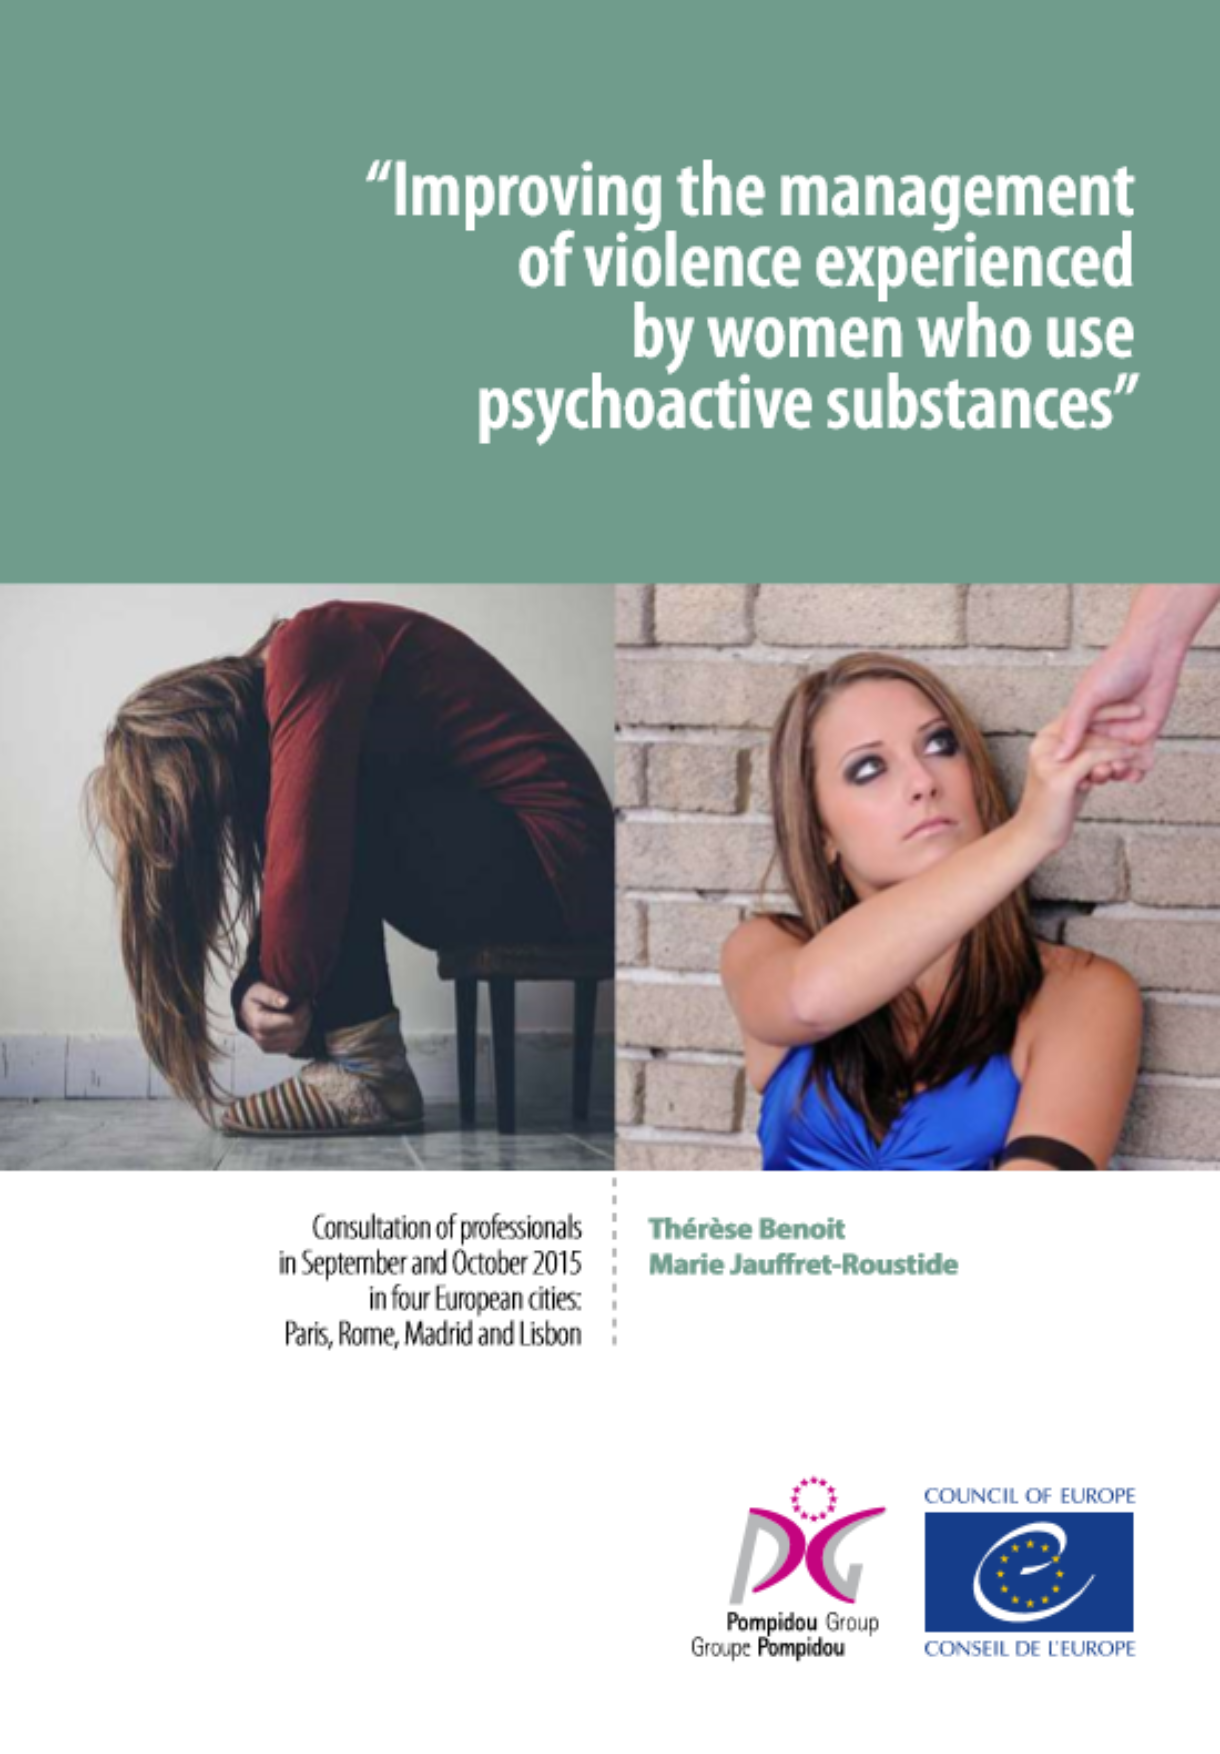 Improving the management of violence experienced by women who use psychoactive substances